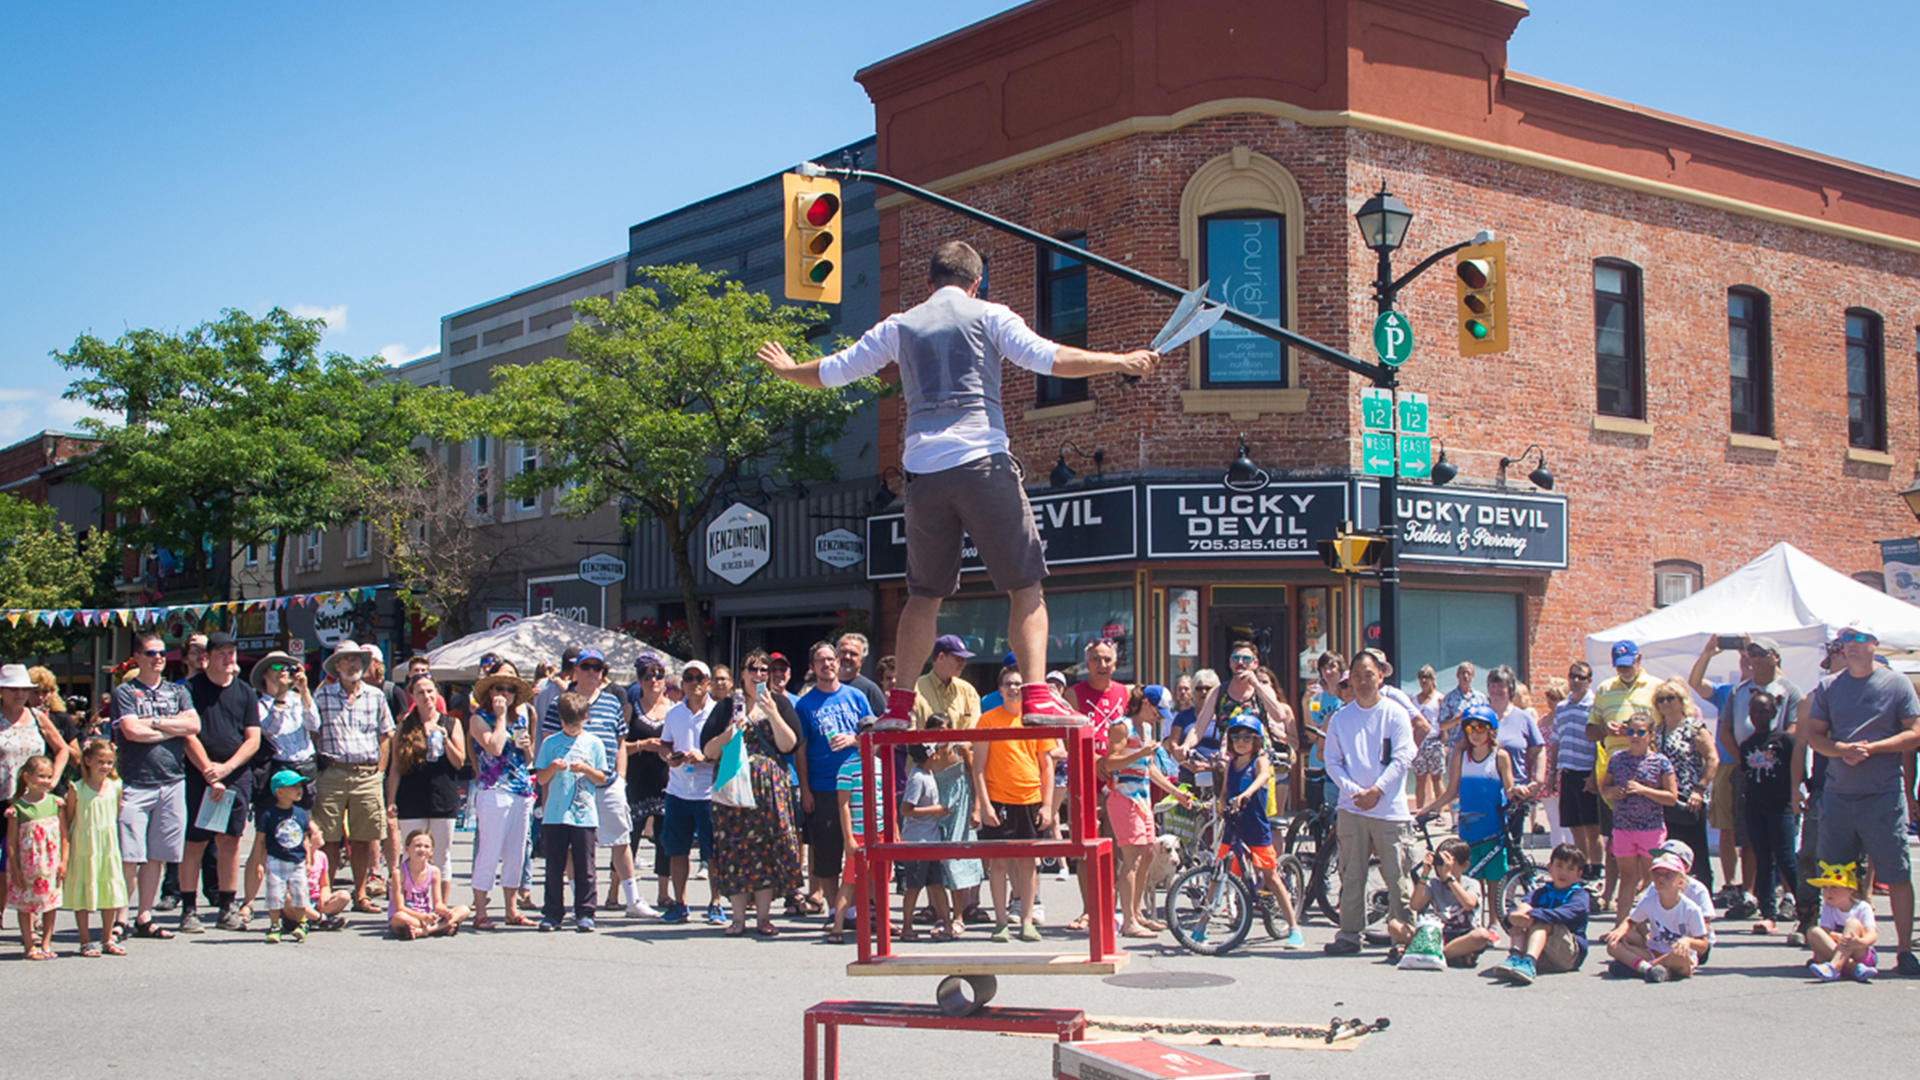 block party - July Events You Don't Want To Miss!